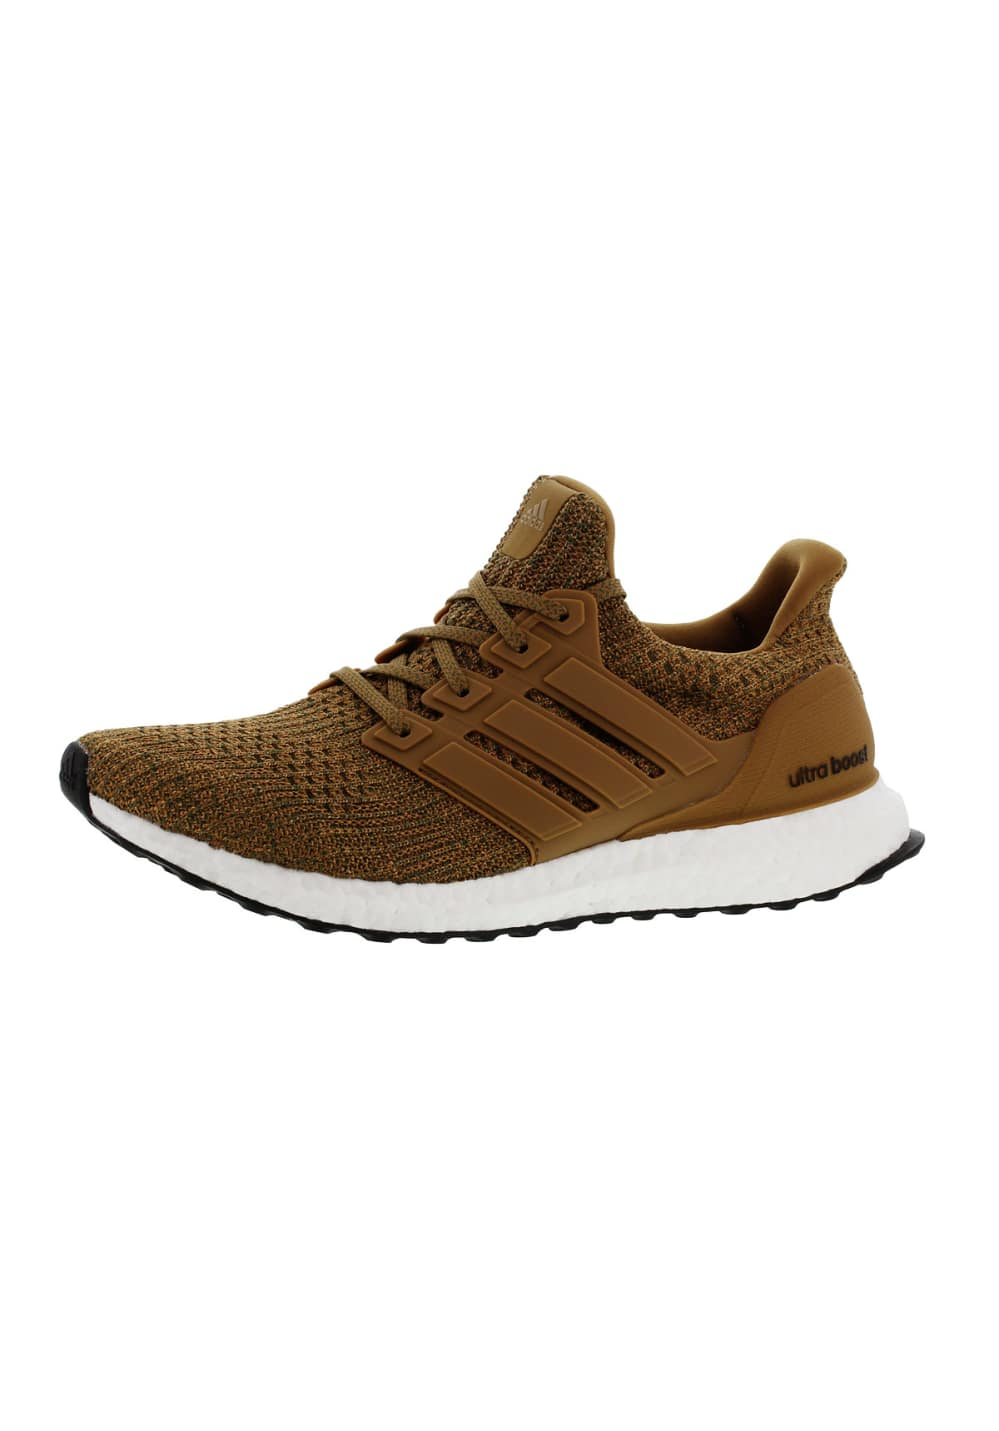 best service 57b2c ab5dd adidas Ultra Boost - Running shoes for Men - Brown